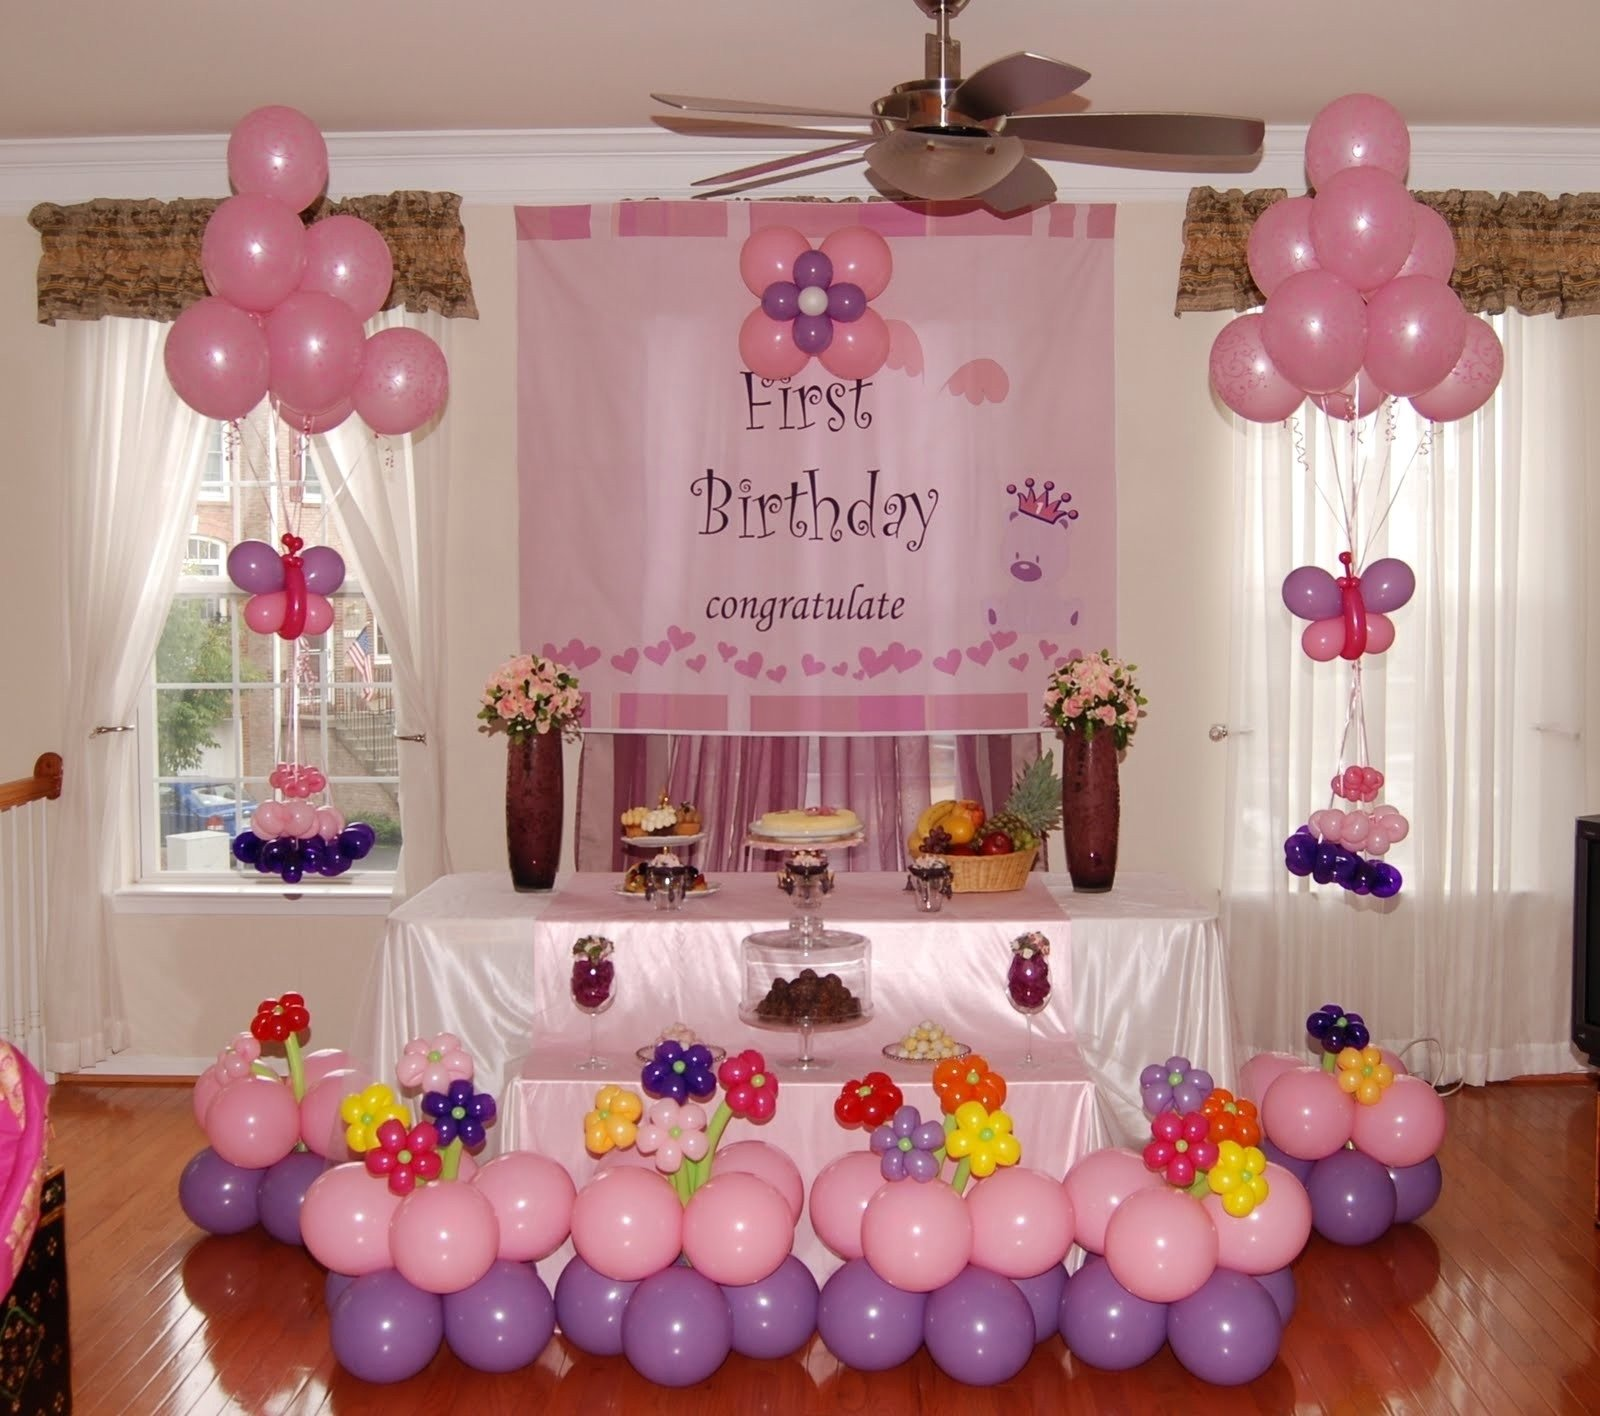 10 Most Recommended Girls 1St Birthday Party Ideas first birthday decoration ideas at home for girl beautiful home avec 2020